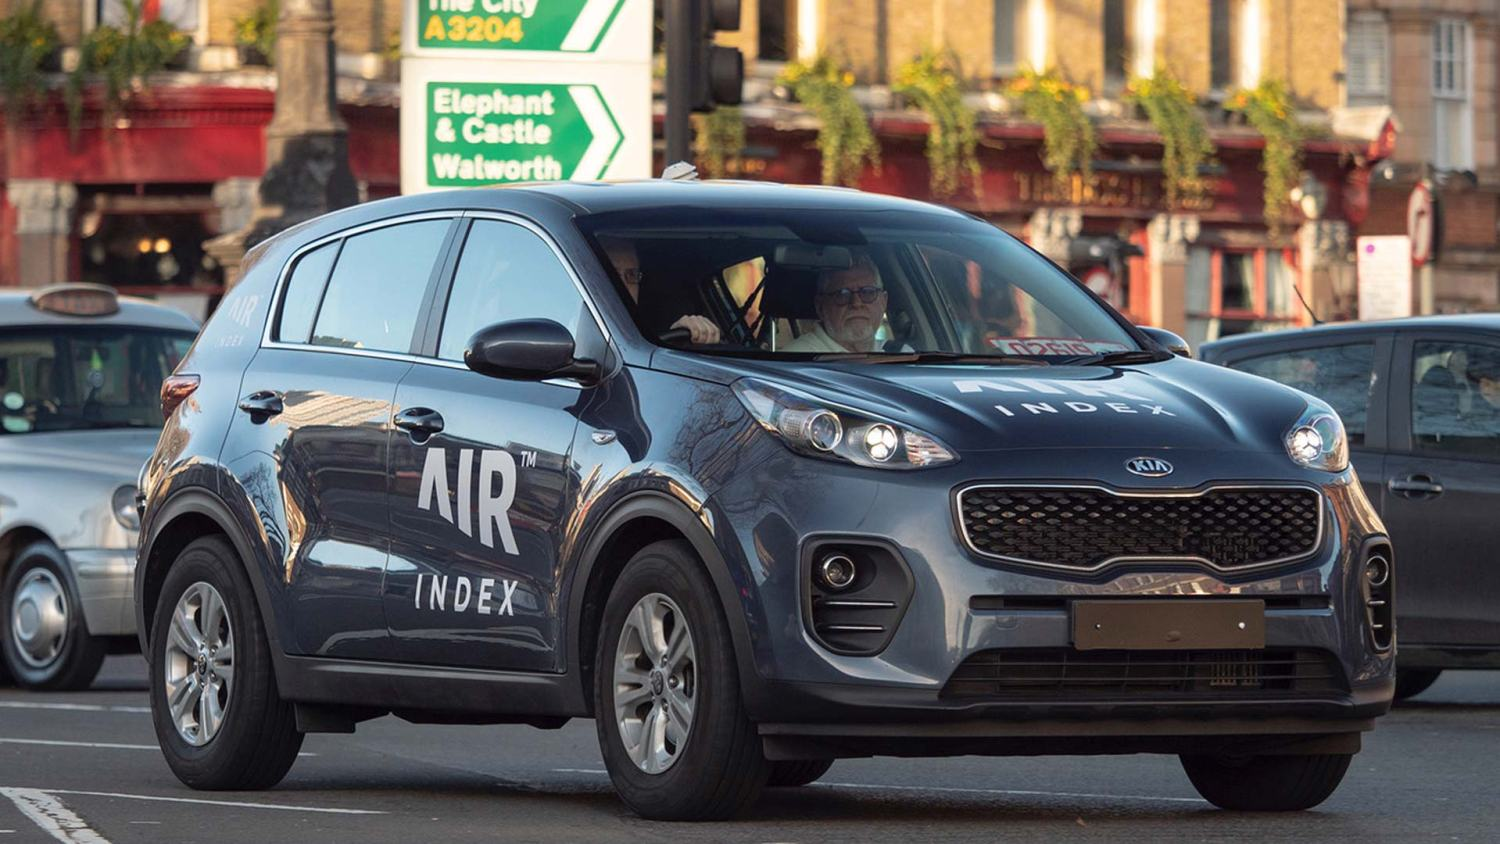 AIR Index: Kia Sportage